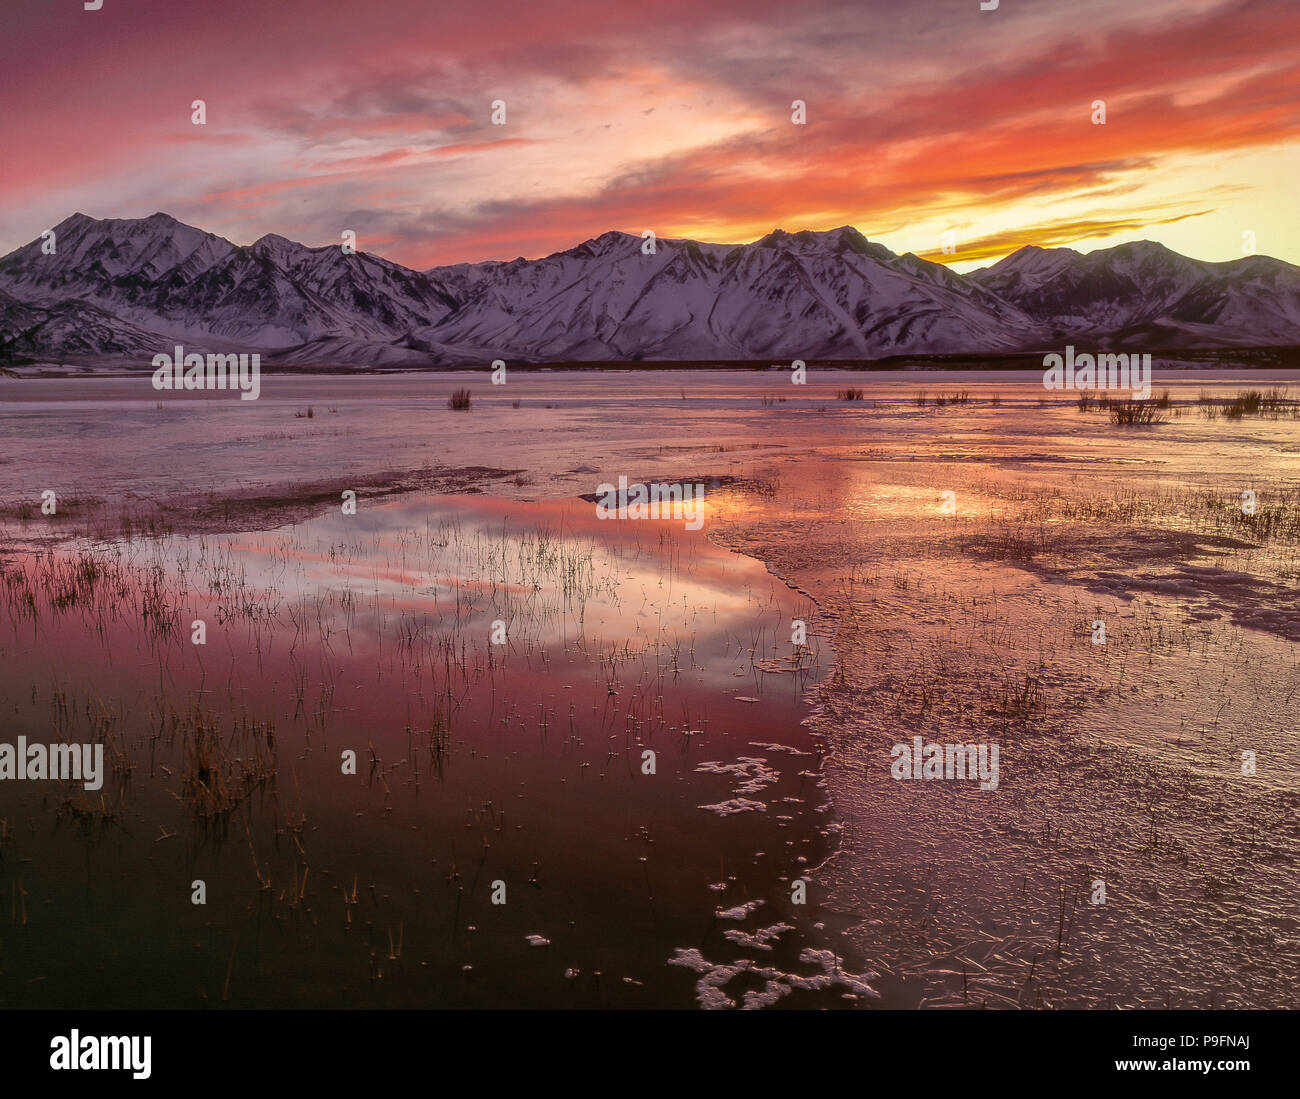 Sunset, Crowley Lake, Inyo National Forest, Eastern Sierra, California - Stock Image